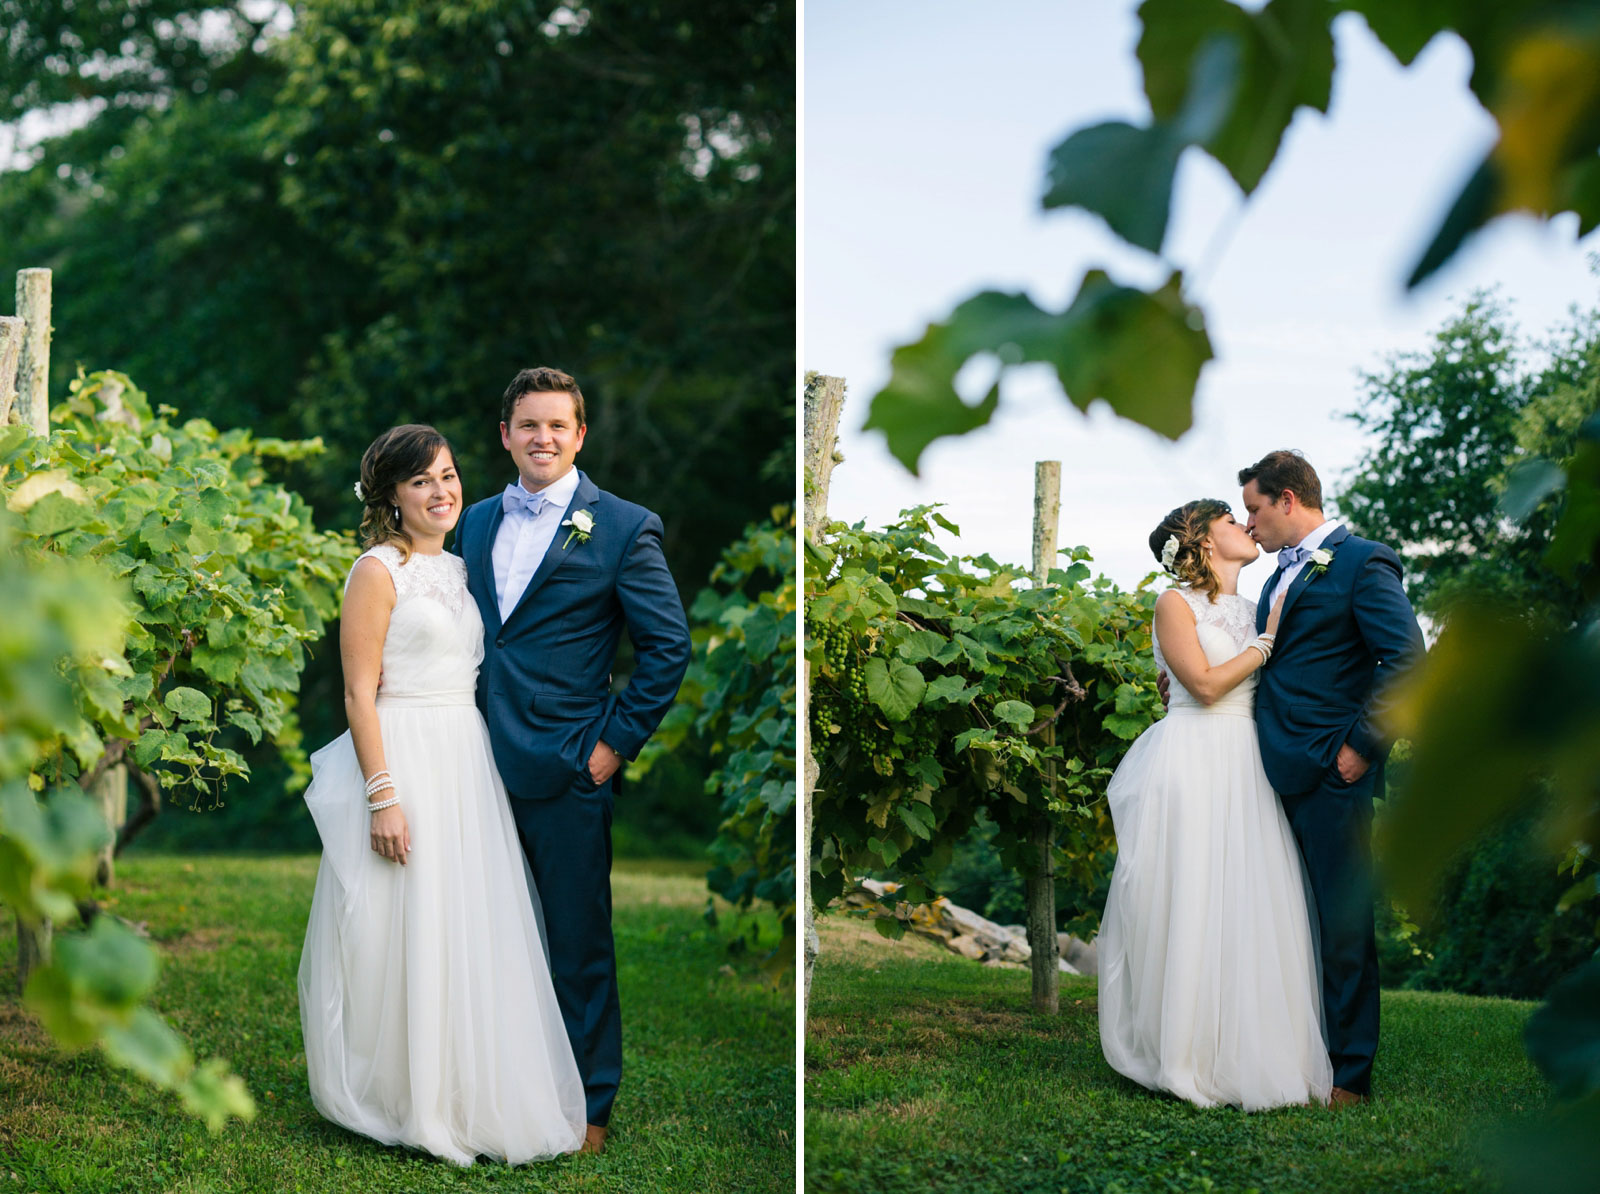 Bride and groom portrait with grape vines on farm, bride and groom pulling each other in and kiss